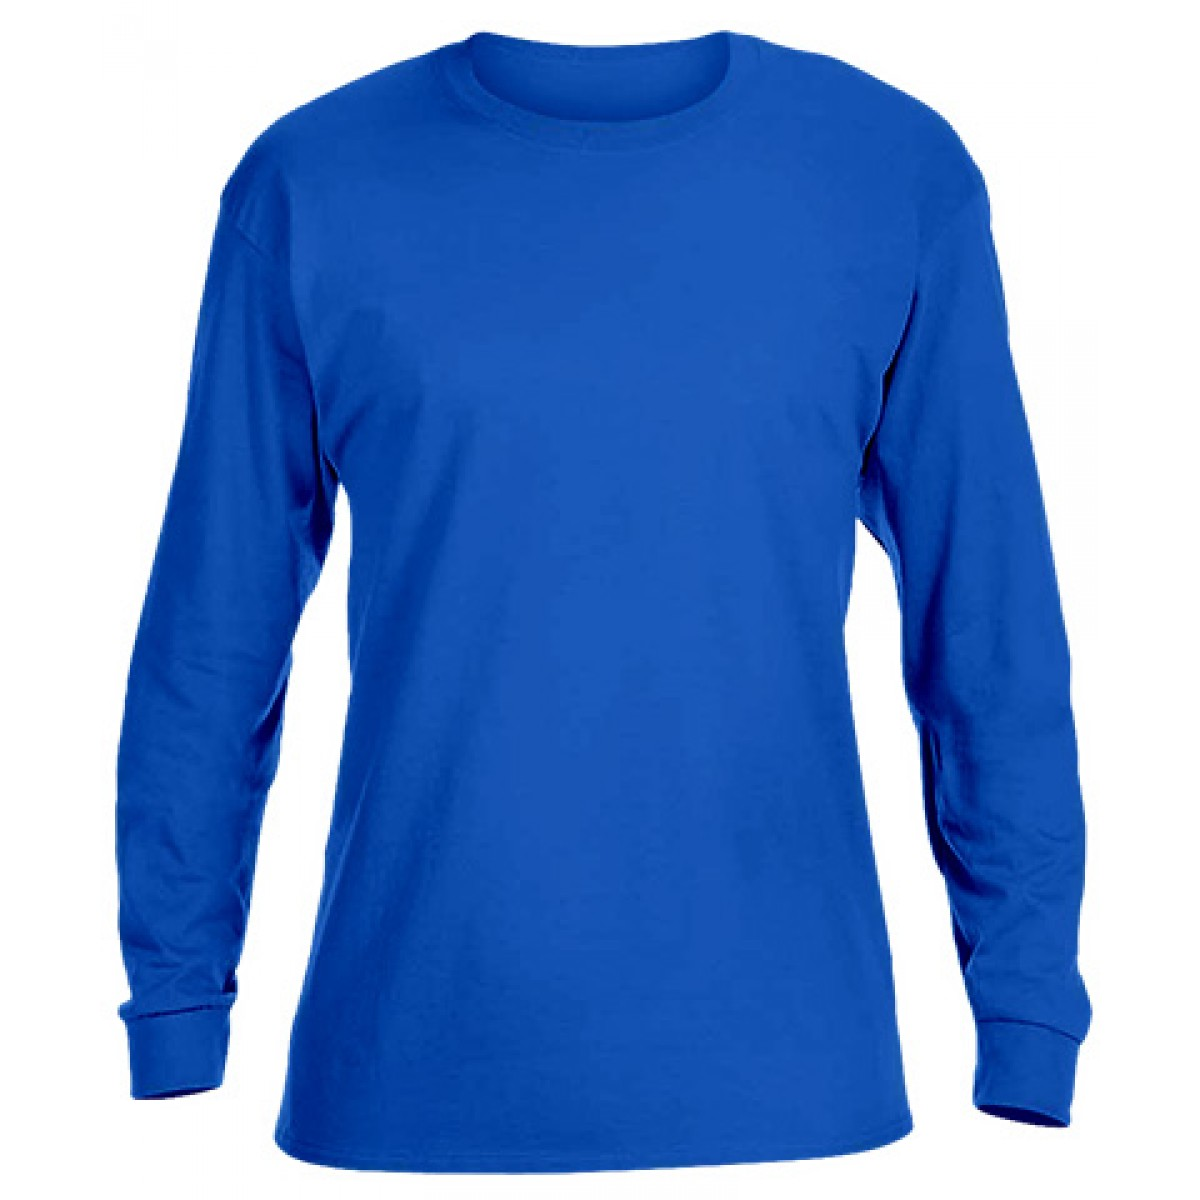 Basic Long Sleeve Crew Neck -Royal Blue-XL